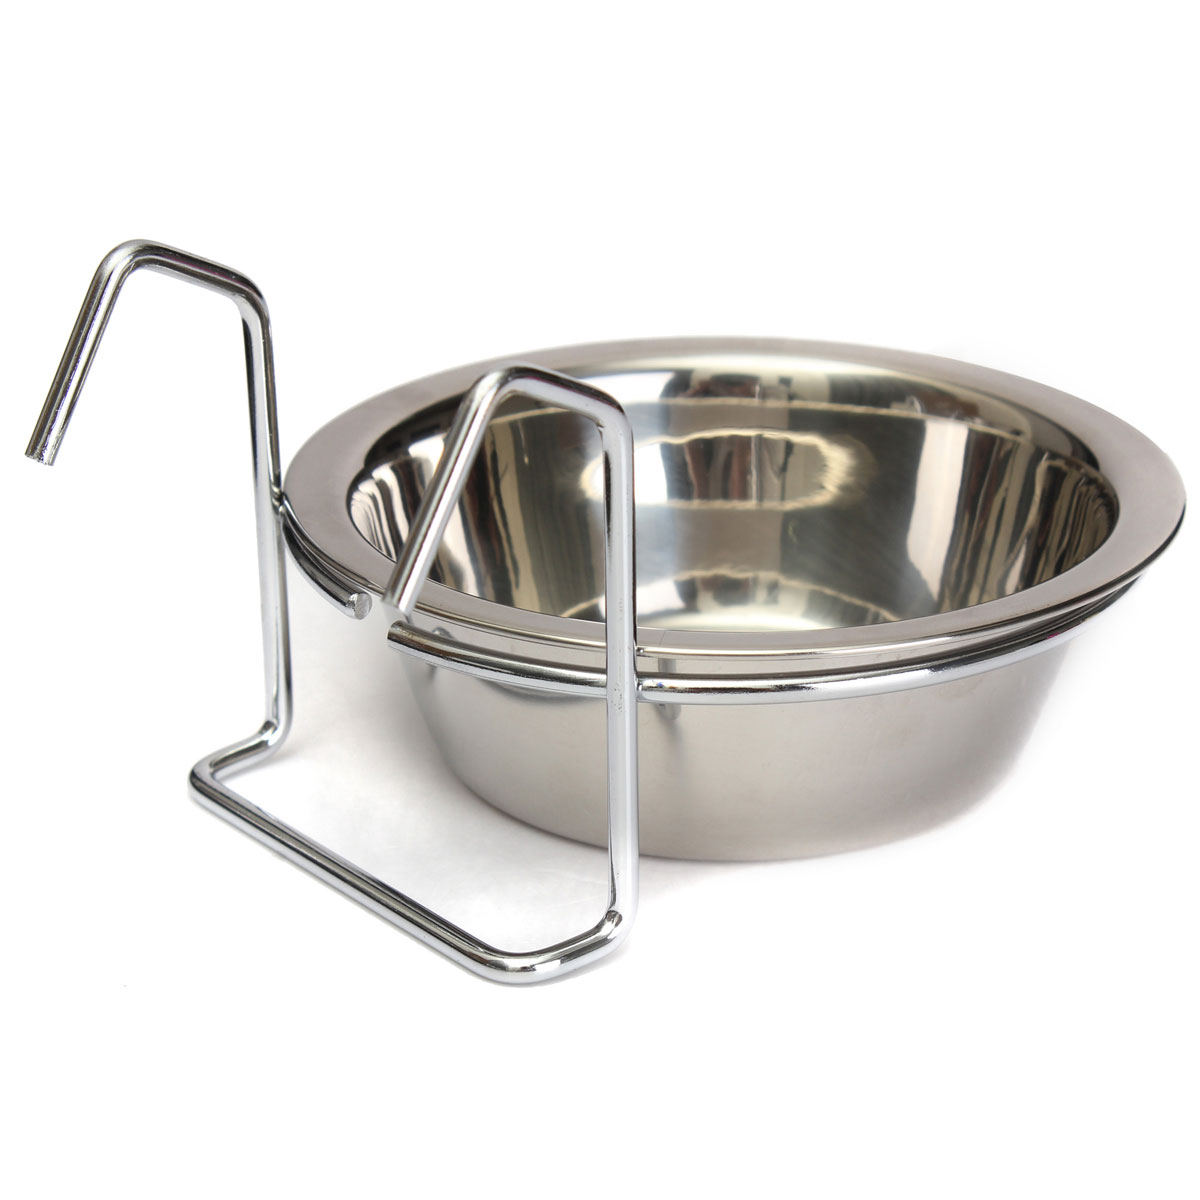 Stainless Cage Coop Cup Pet Bird Cat Dog Puppy Piggy Pig Food Water Bowl Hanger